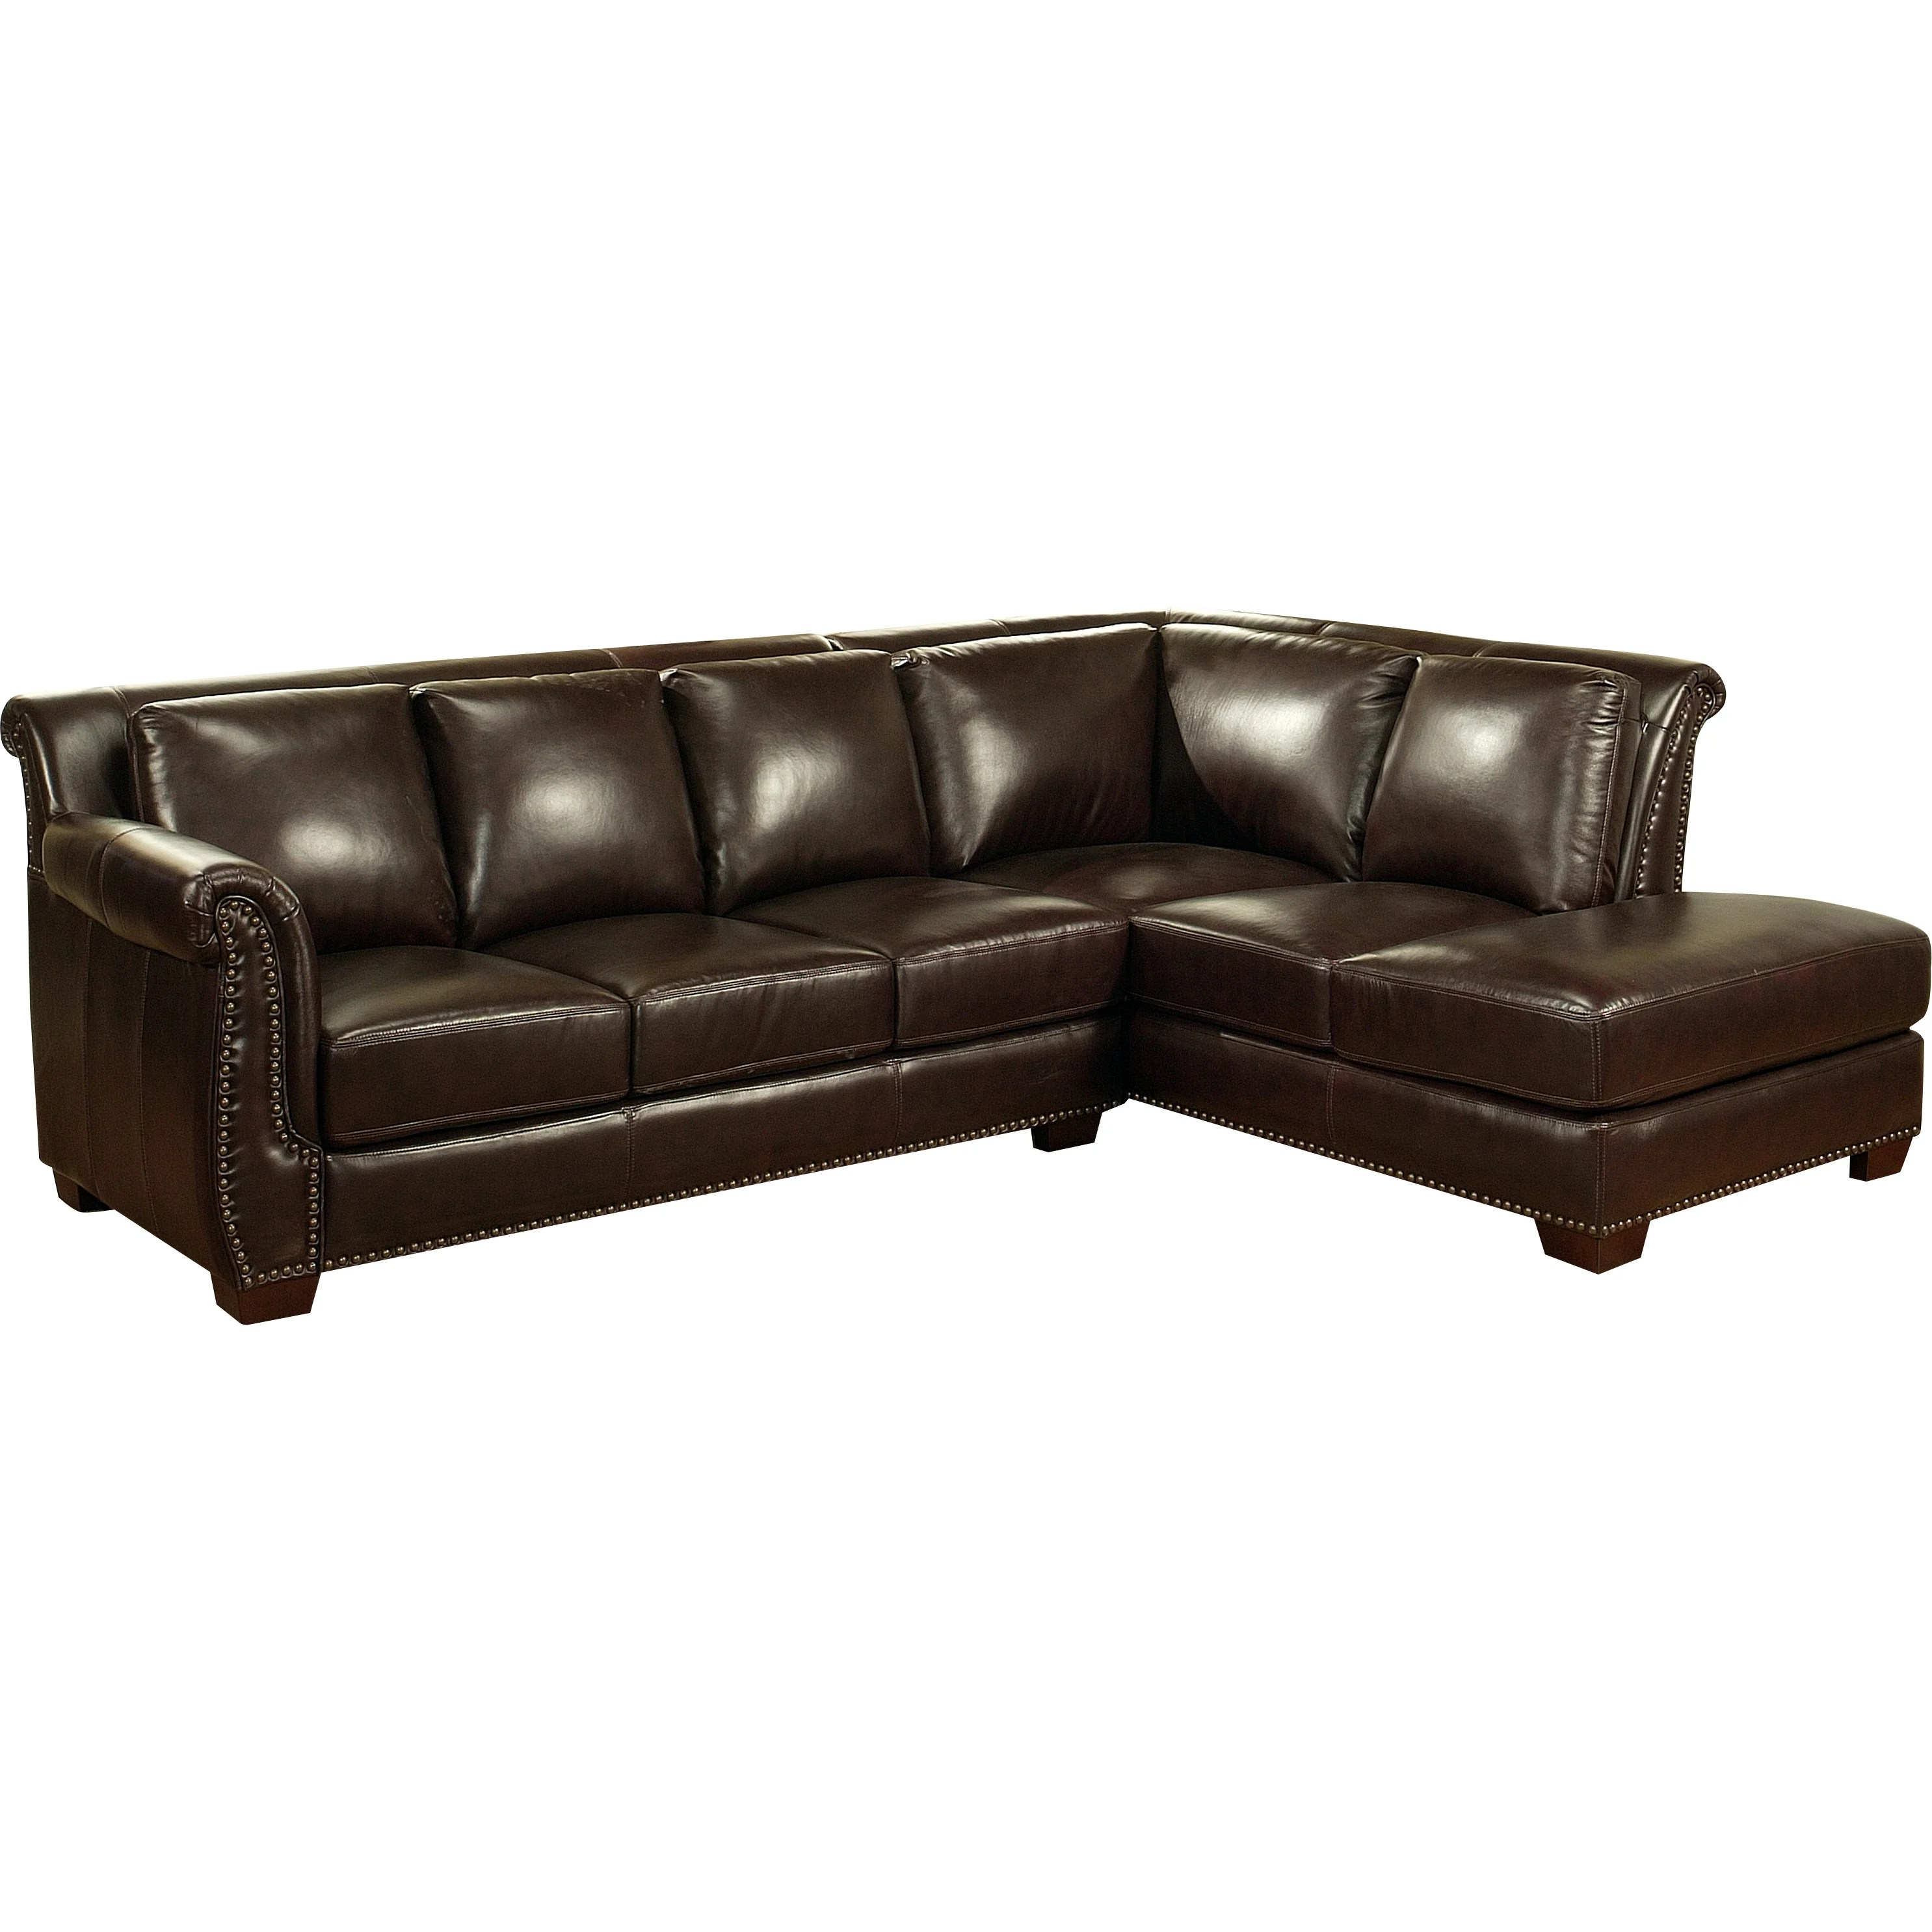 abbyson living berkshire italian leather sectional sofa large round sofas ellis and reviews